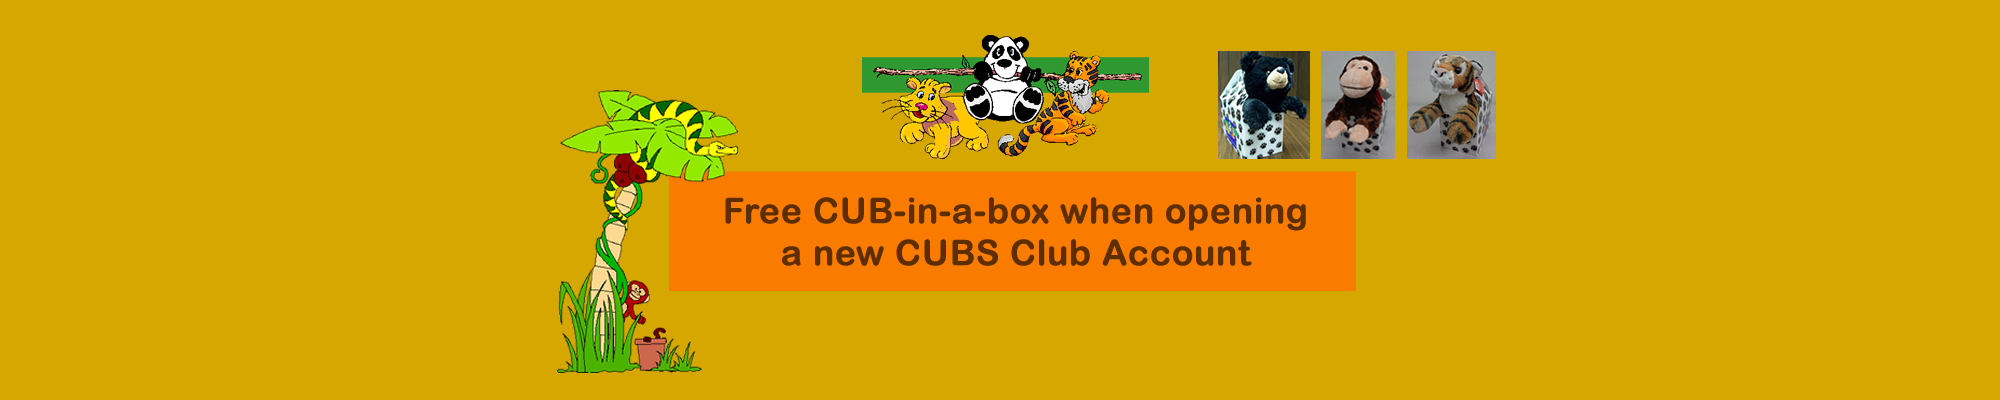 CUBS Club Promotion